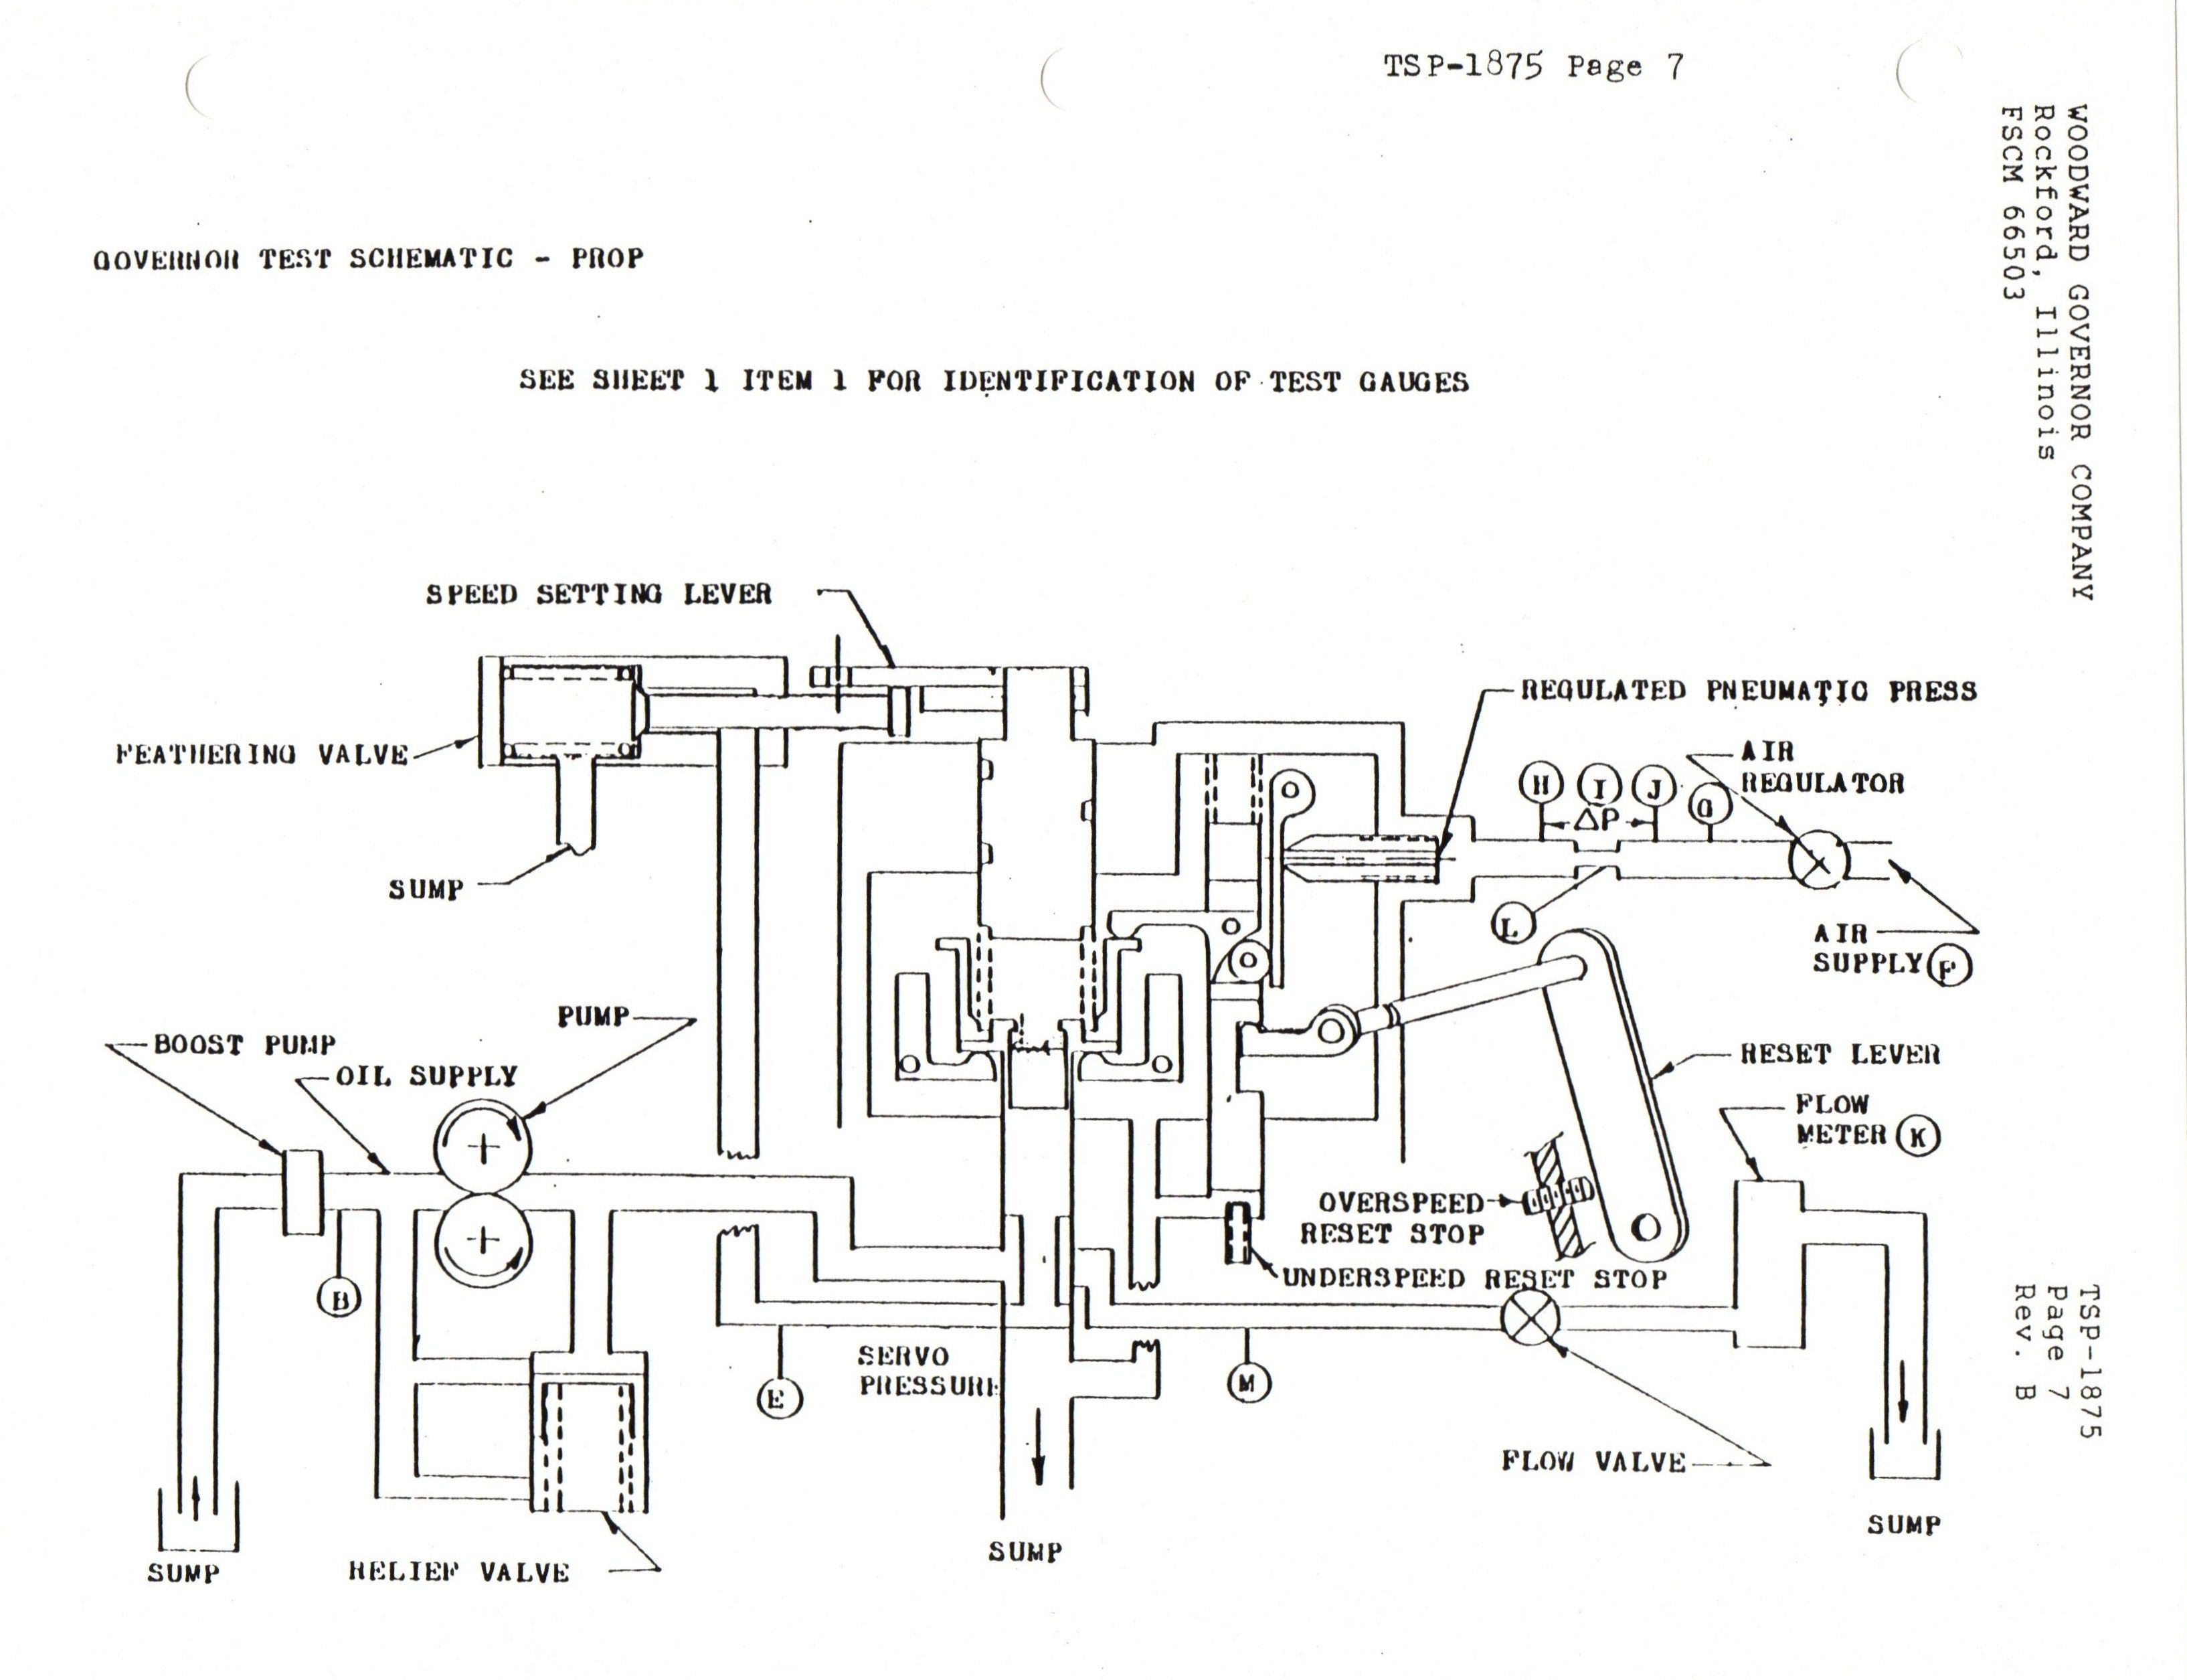 Woodward Propeller Governor Schematic | Schematic drawings ... on